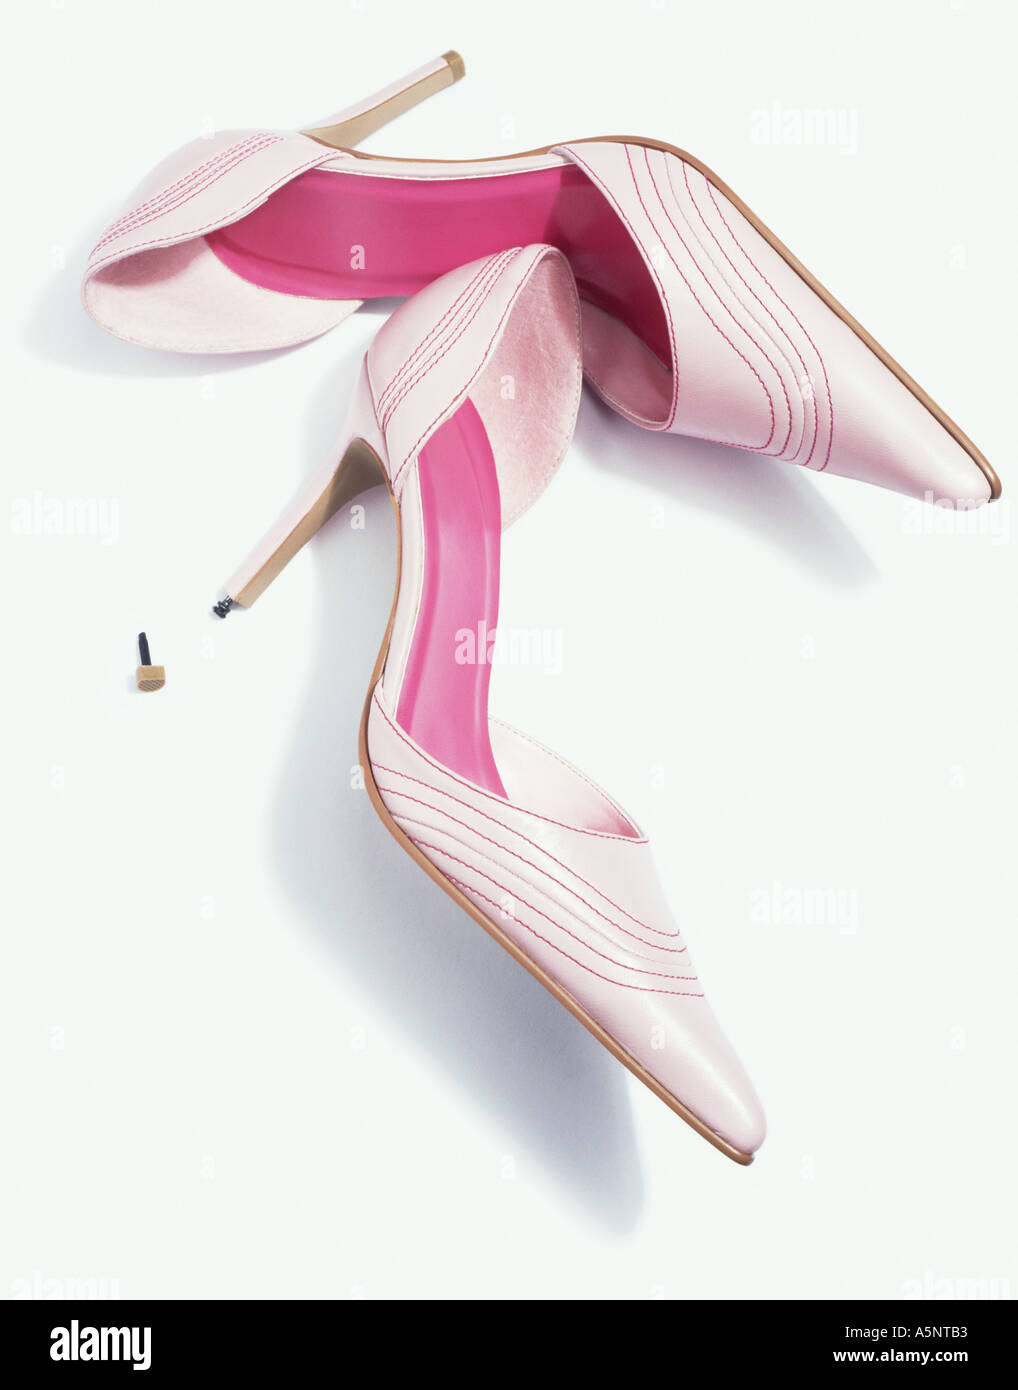 A pair of pink stiletto shoes one with the heel tip missing - Stock Image